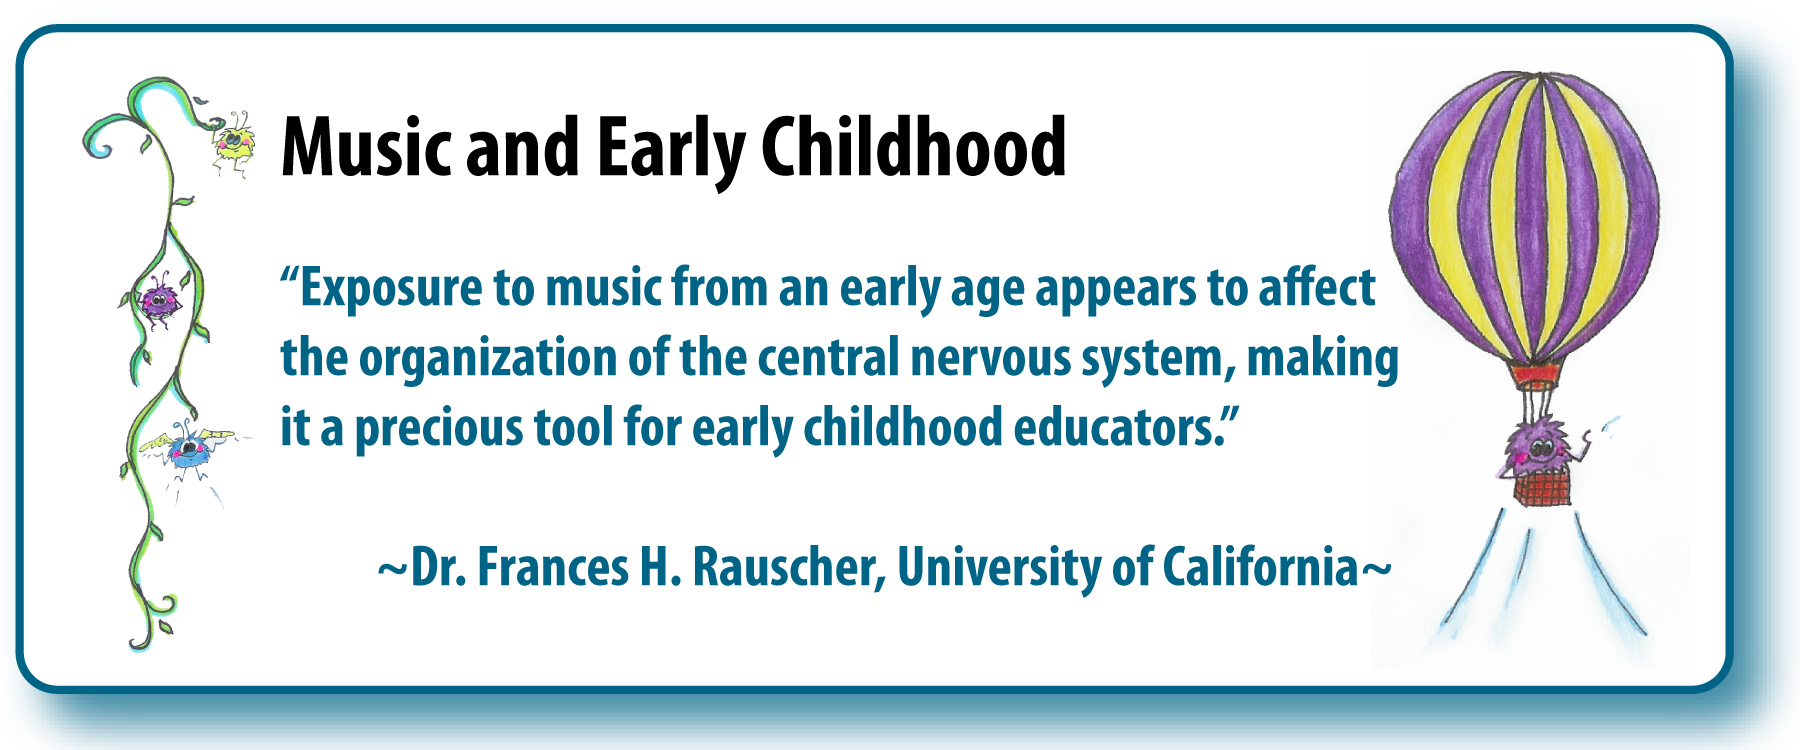 early childhood Browse early childhood education news, research and analysis from the conversation.